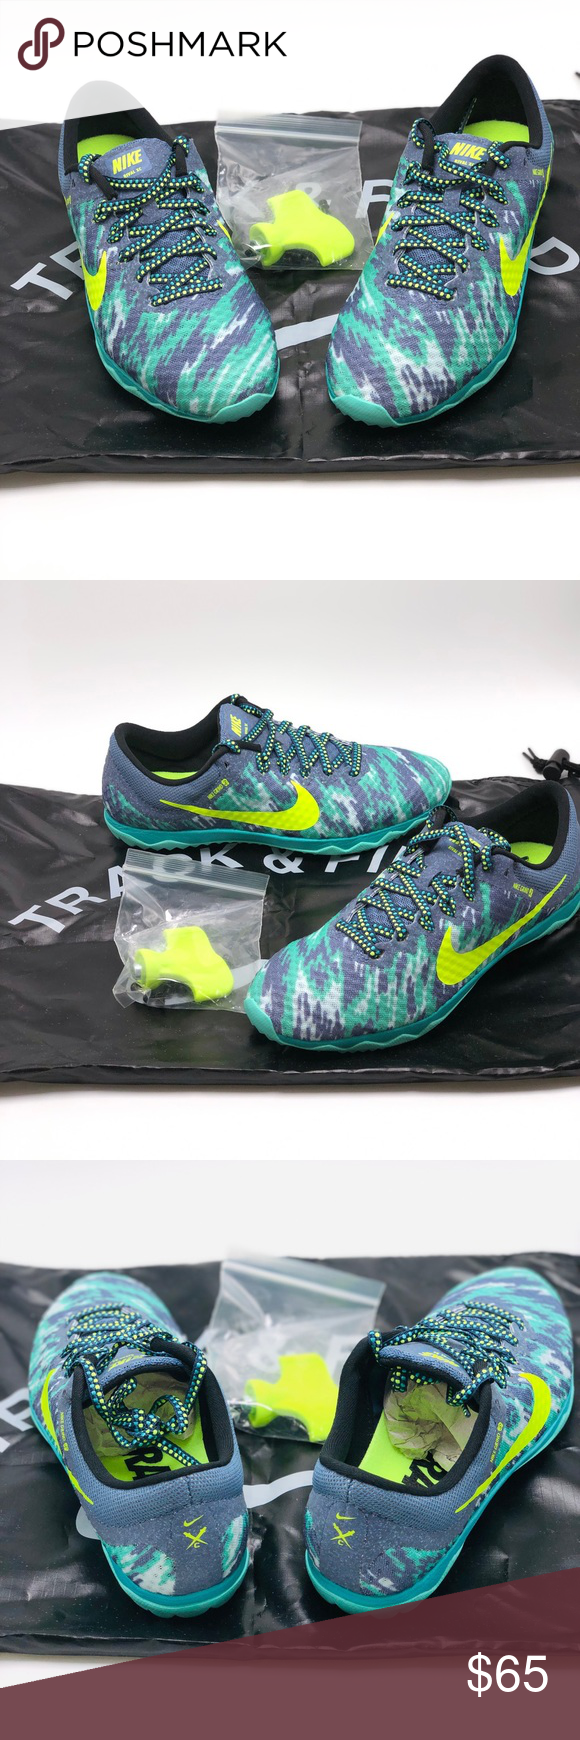 2bbb5949eced2 Lady Nike Zoom Rival XC Nike s best selling cross country spike The Nike  Zoom Rival XC